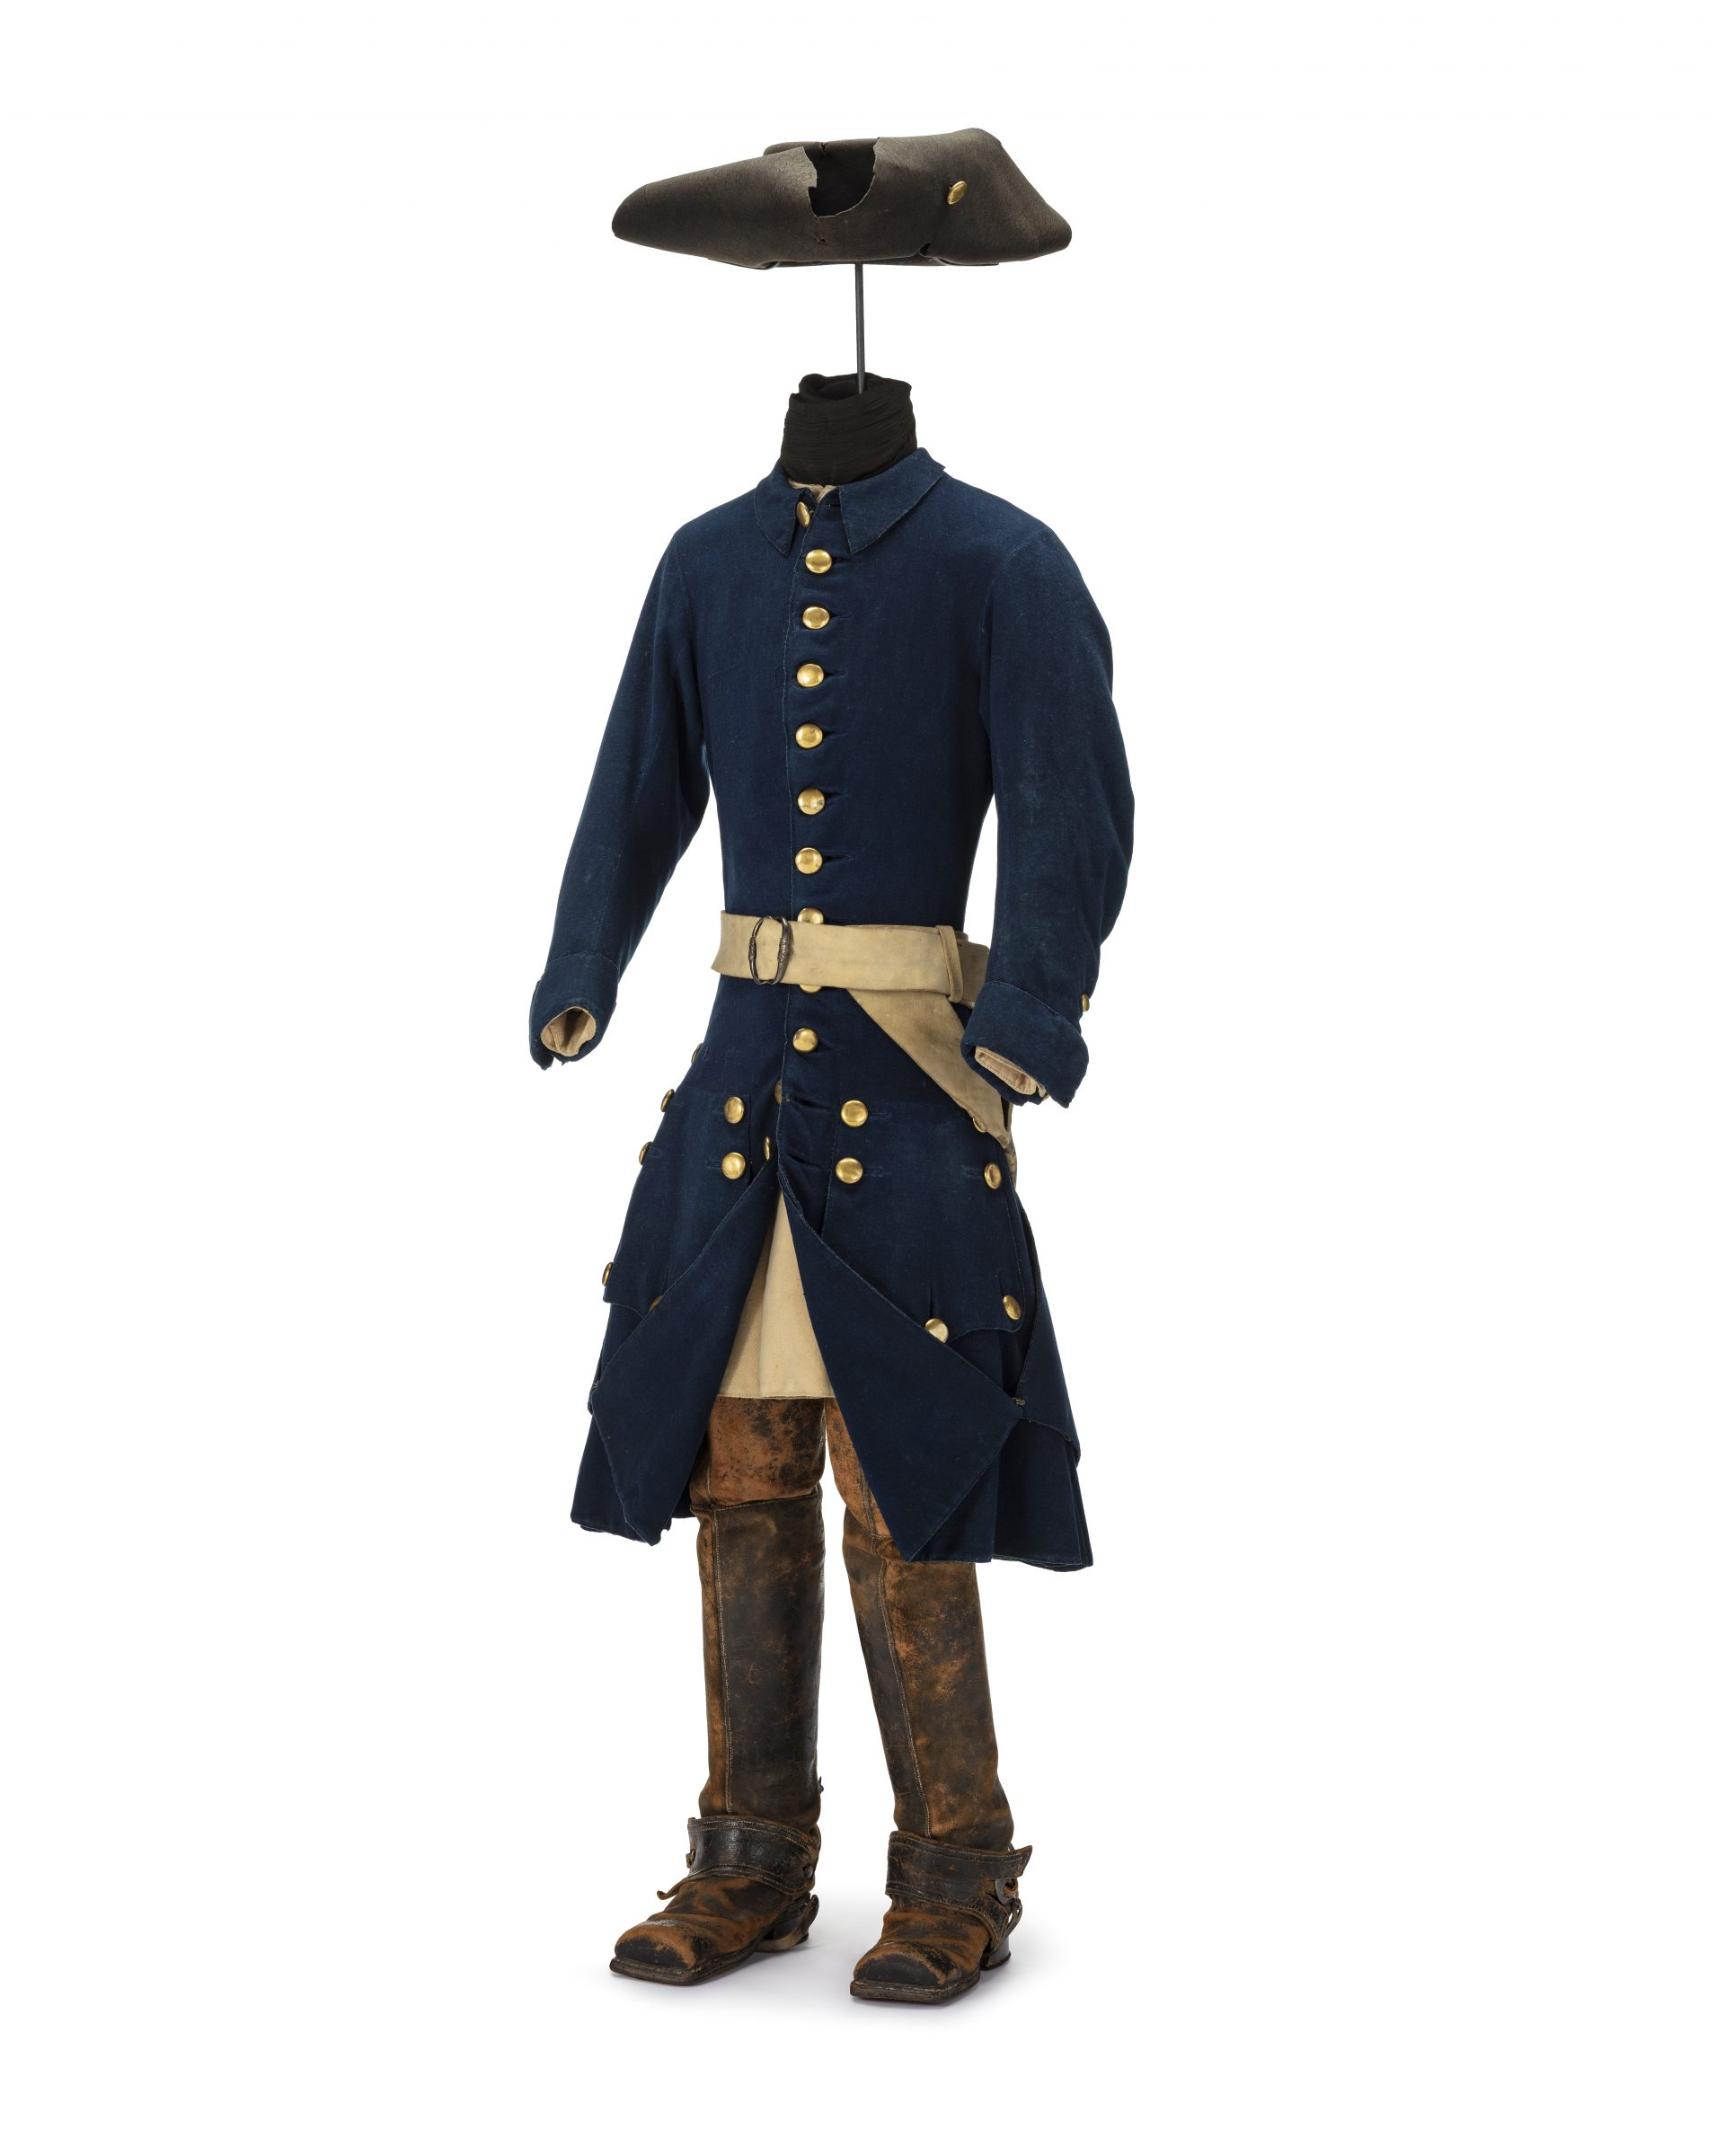 Blue uniform with boots and hat.